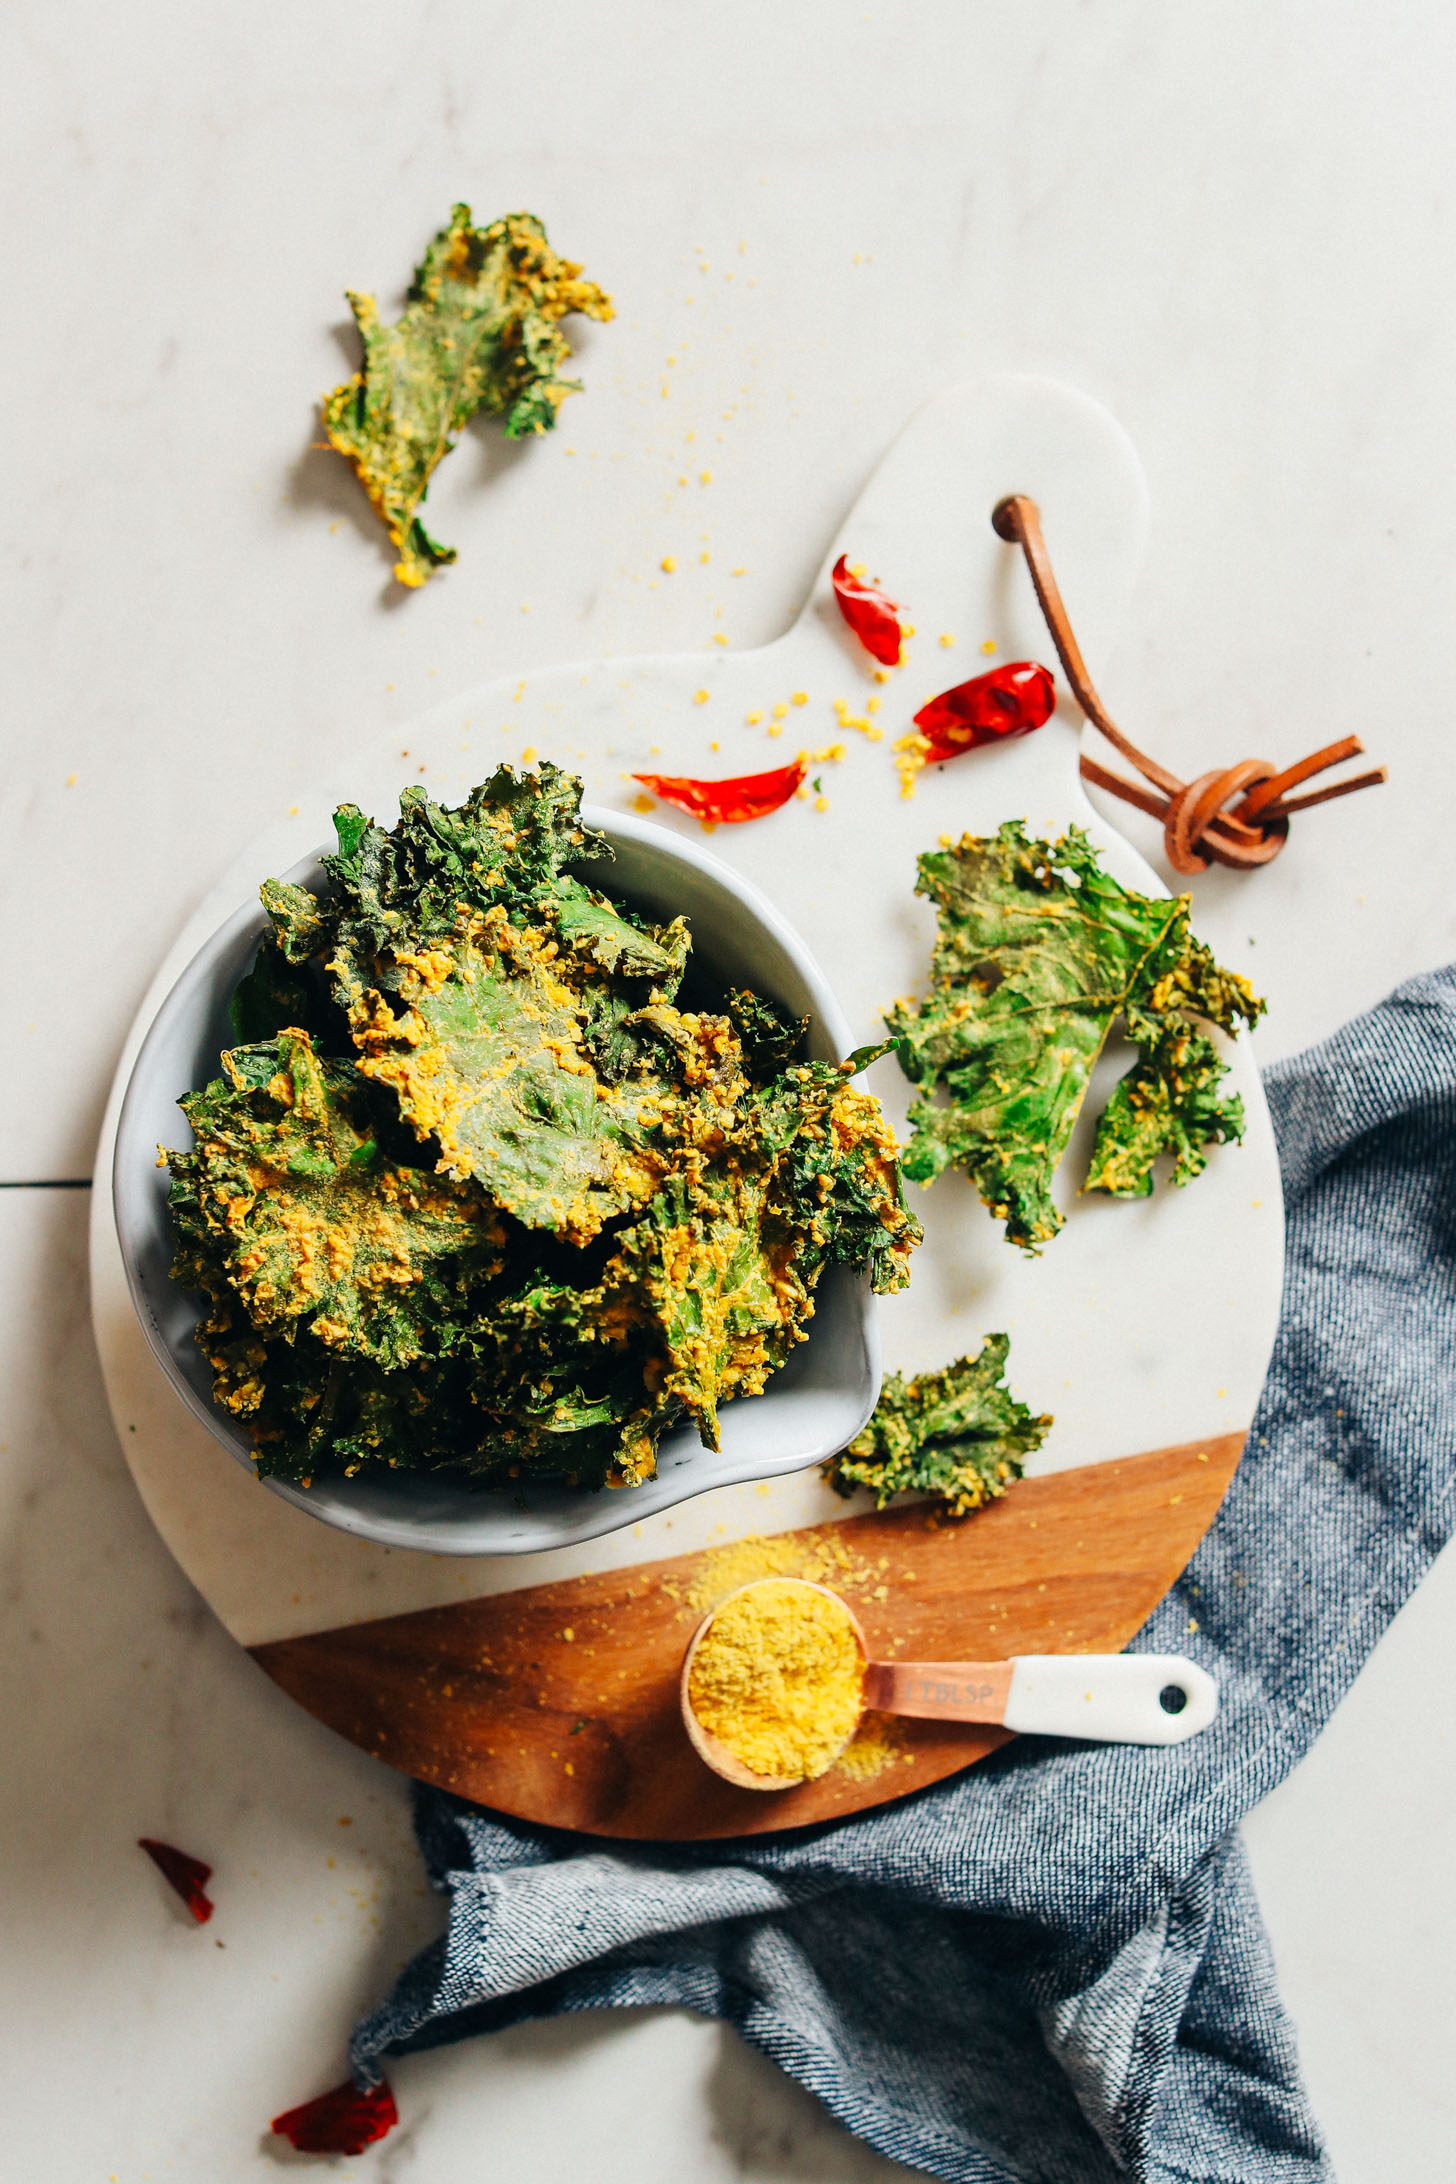 Marble cutting board with a bowl full of Crispy Baked Kale Chips for the perfect plant-based snack